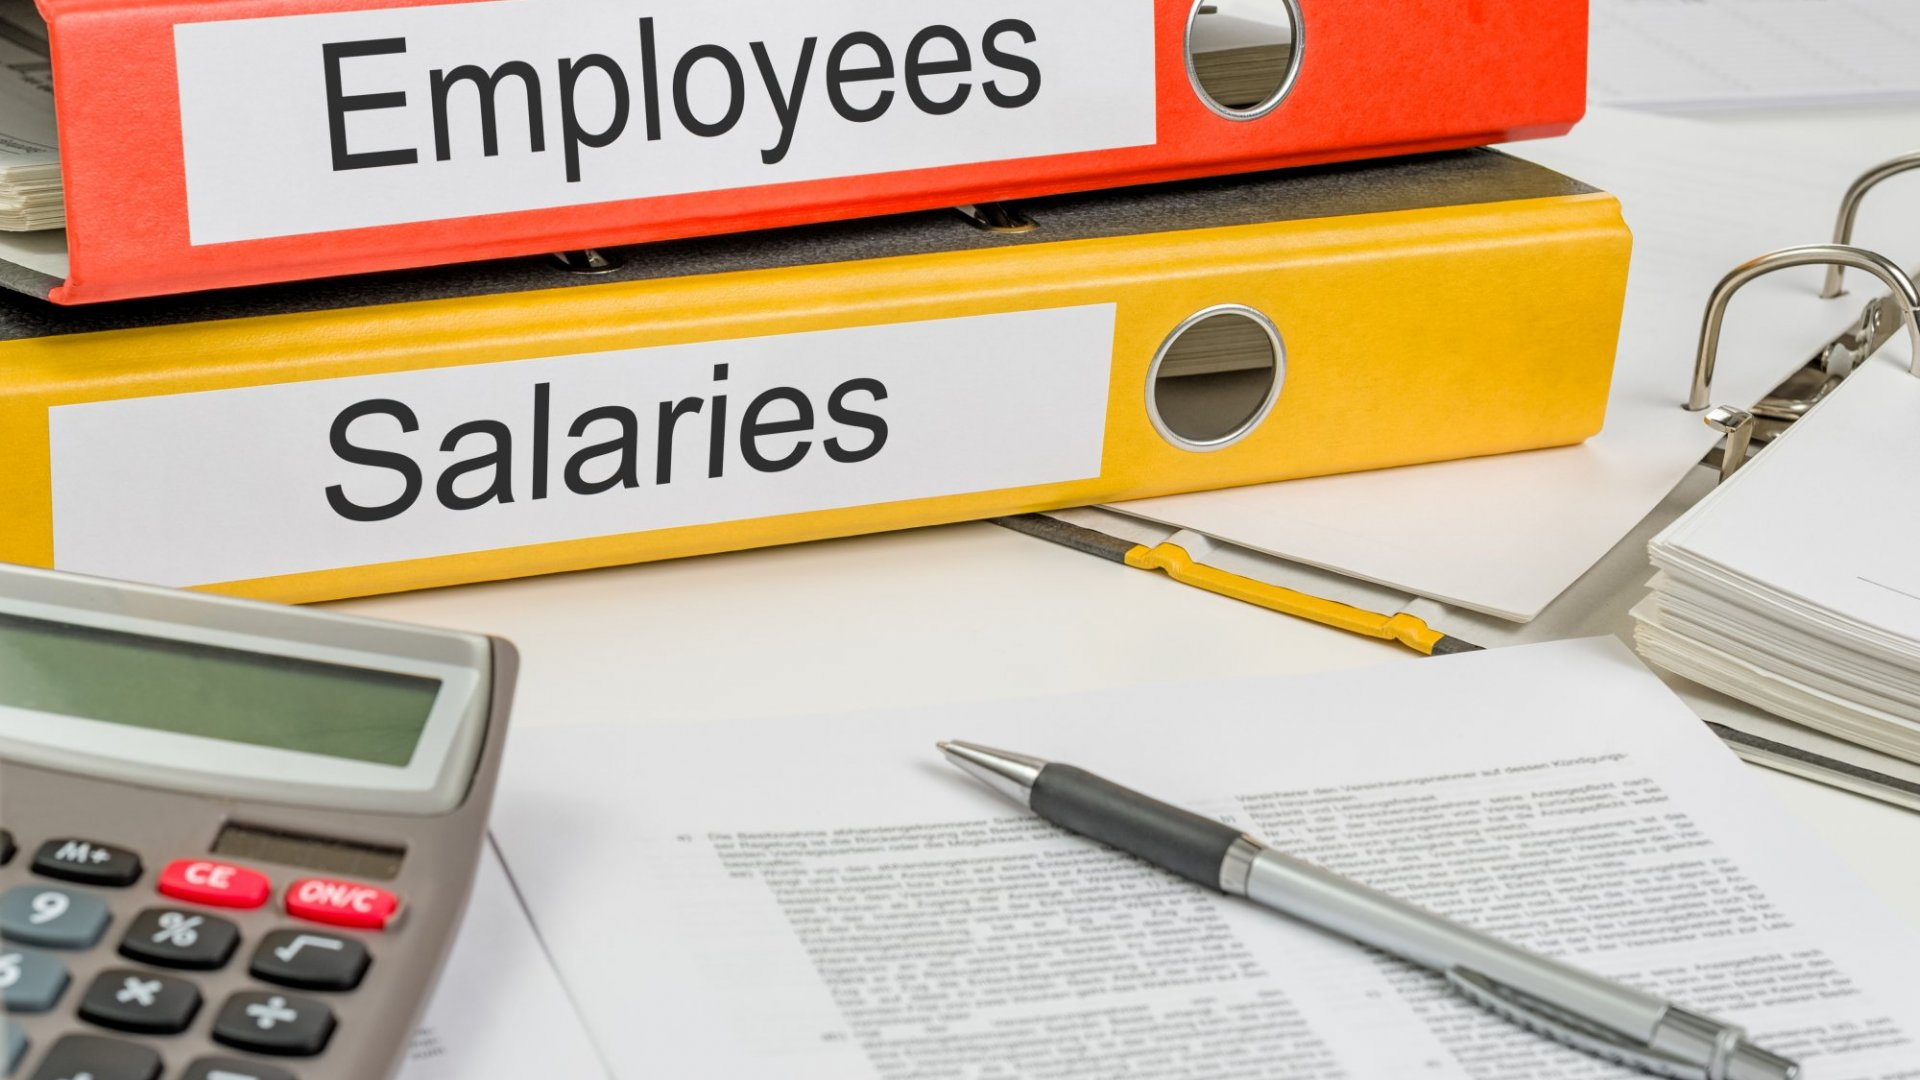 How to Plan for Hiring and Payroll in 2011